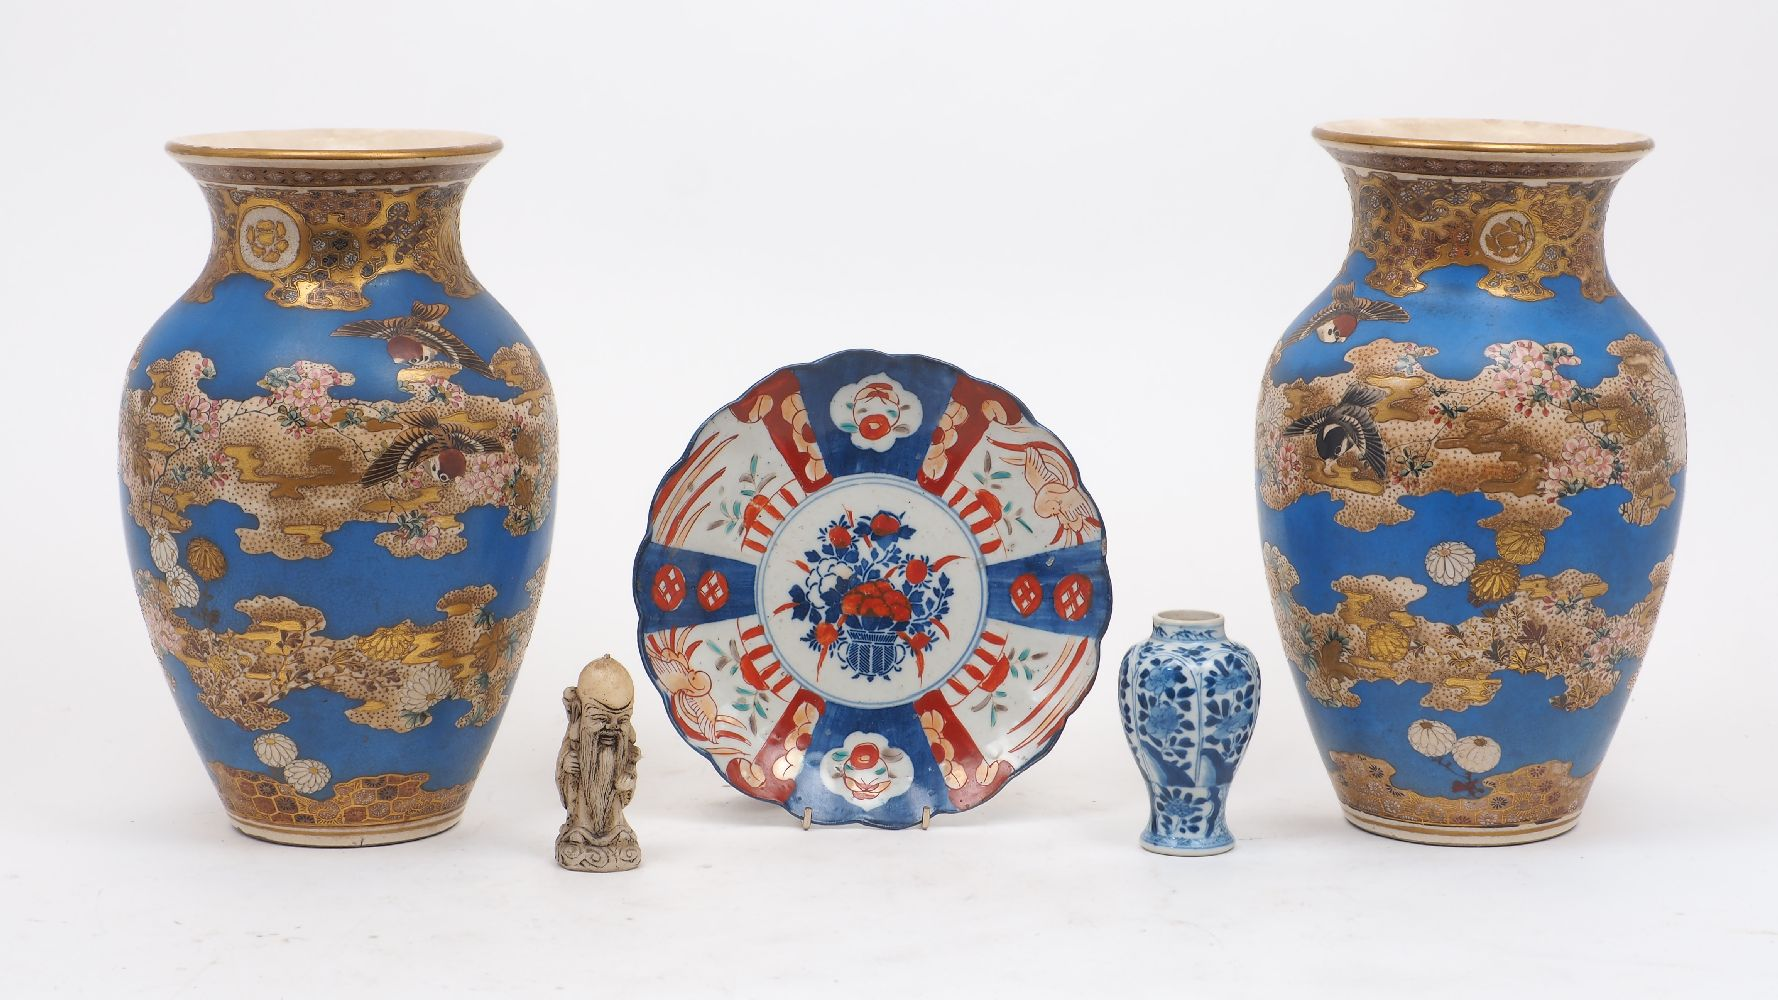 A pair of Japanese Satsuma baluster vases, early 20th century, painted with floral sprays to a